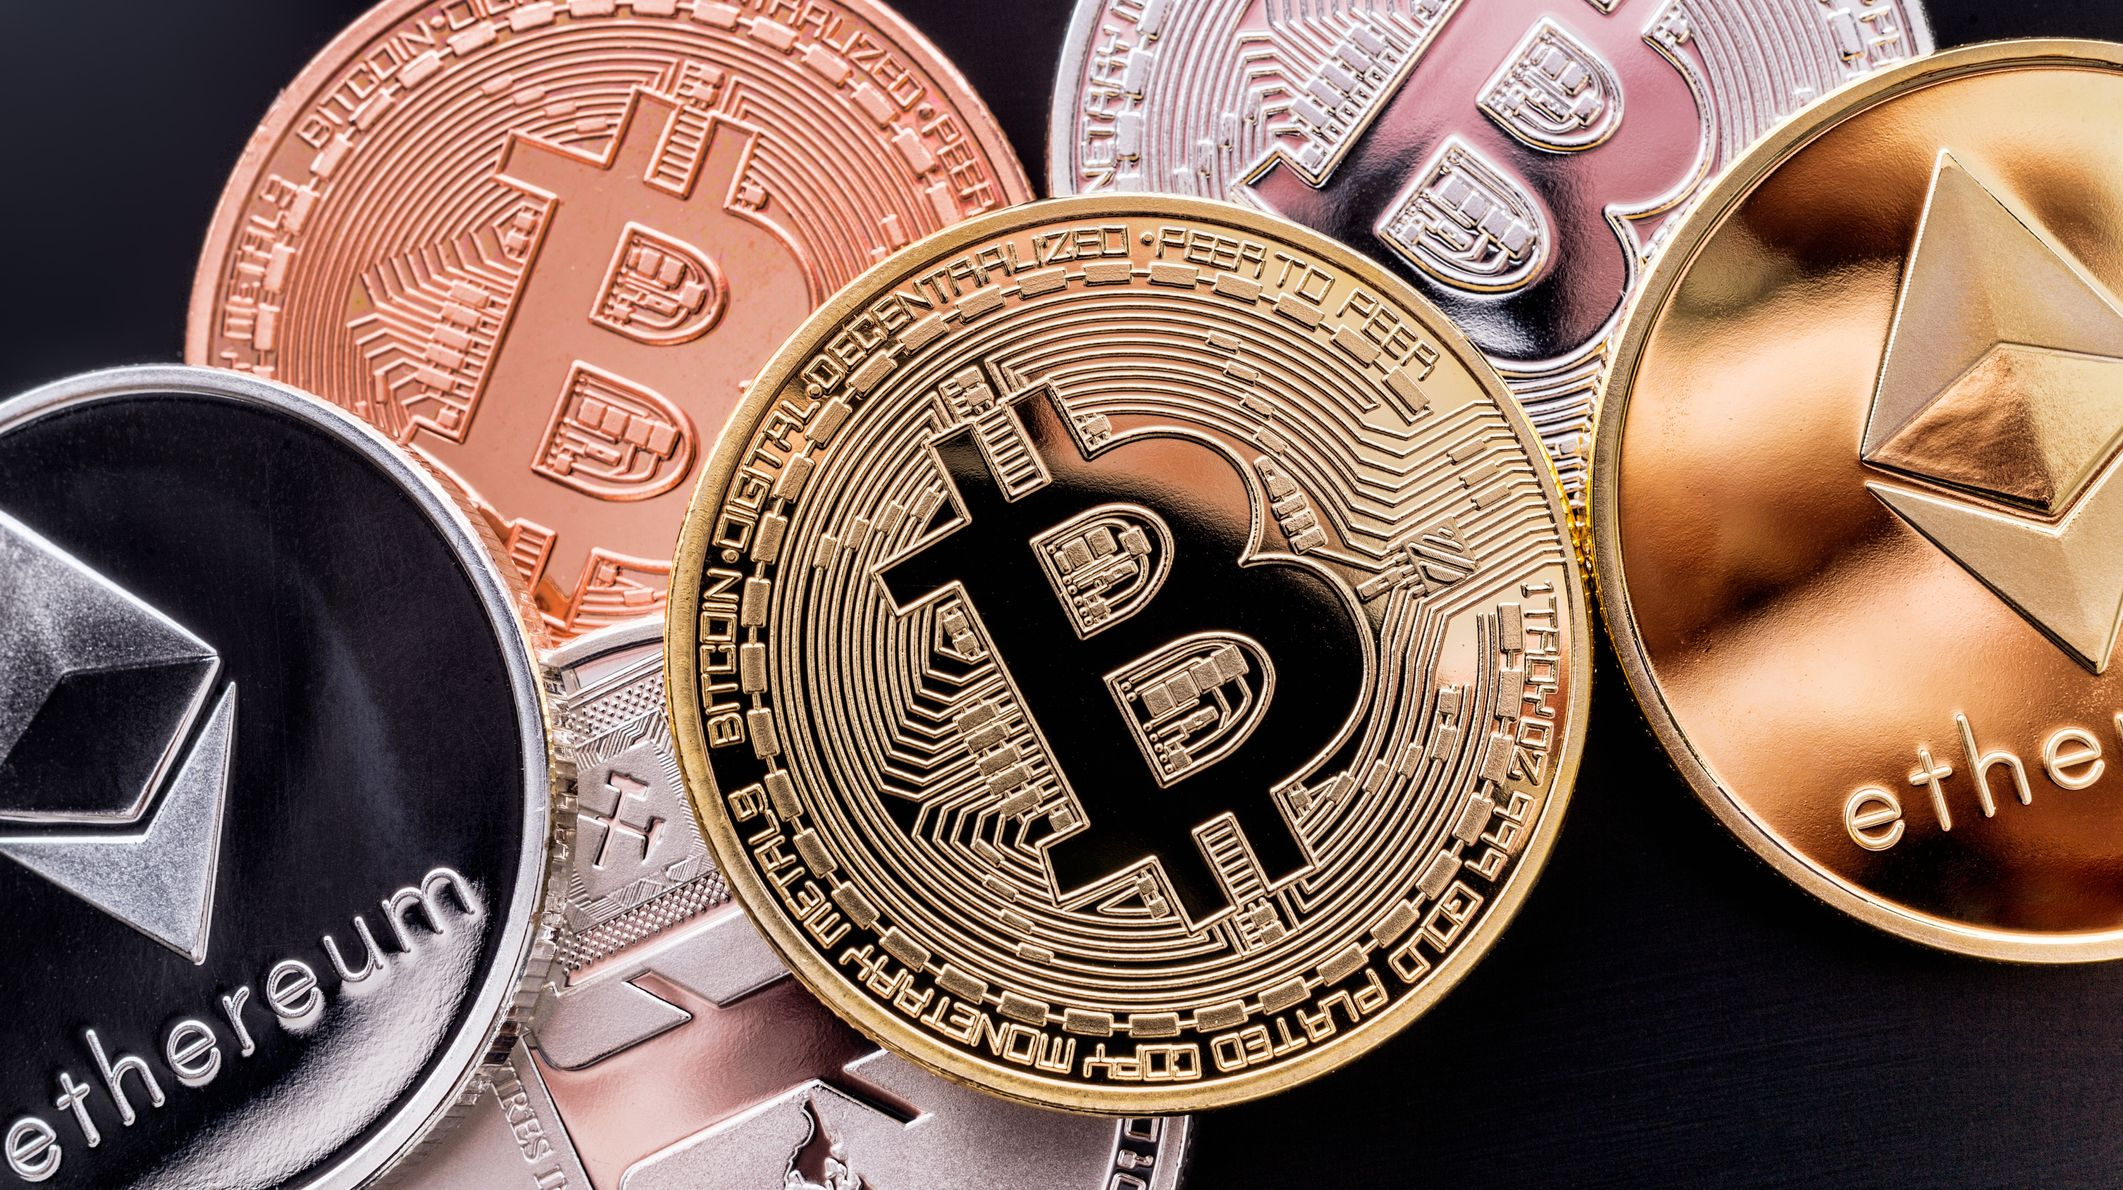 Can you buy bitcoin on ameritrade